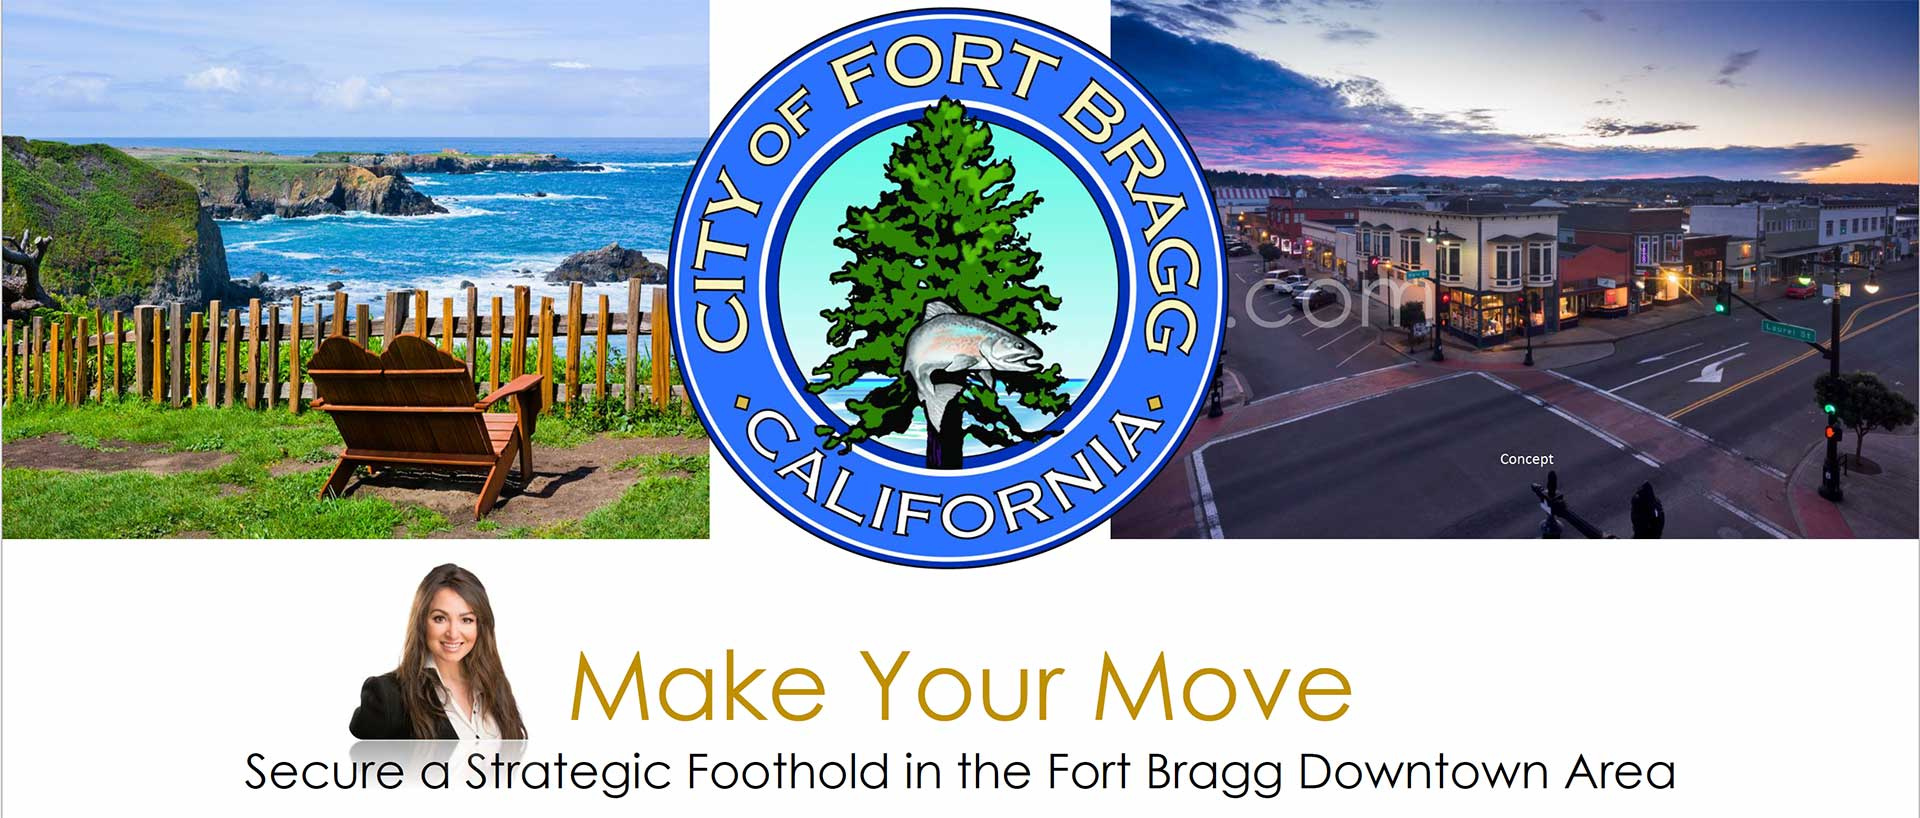 1151-s-main-in-fort-bragg-disclaimer